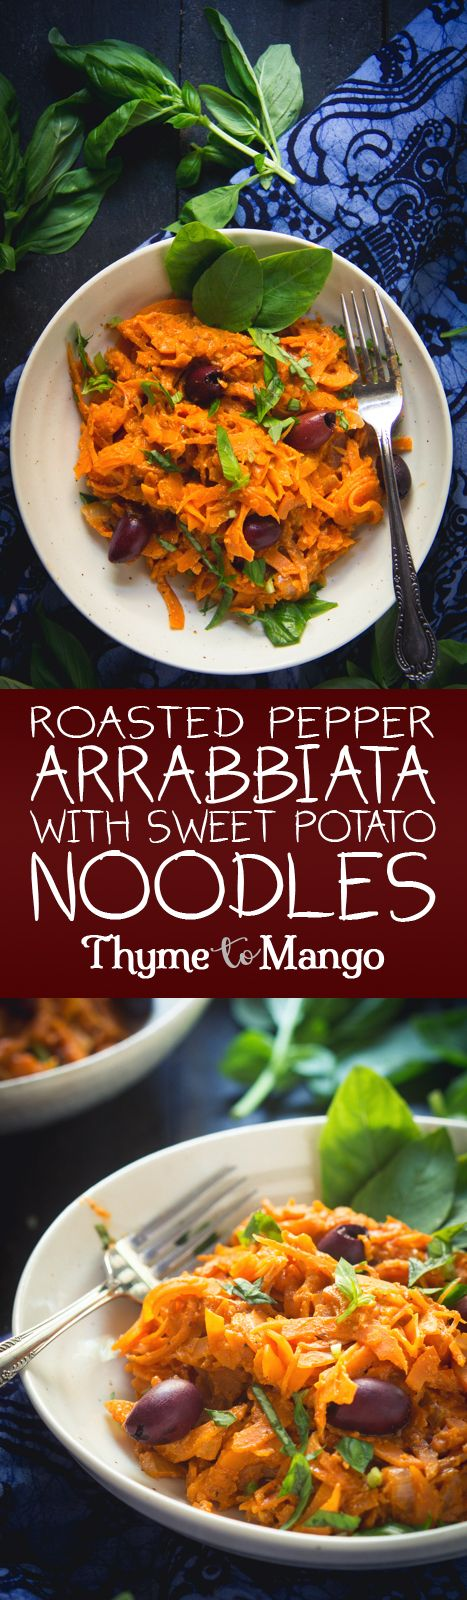 Time to raise your spiralizing game with these sweet potato noodles, drowned in a roasted red pepper arrabbiata sauce - quick, easy and delicious!